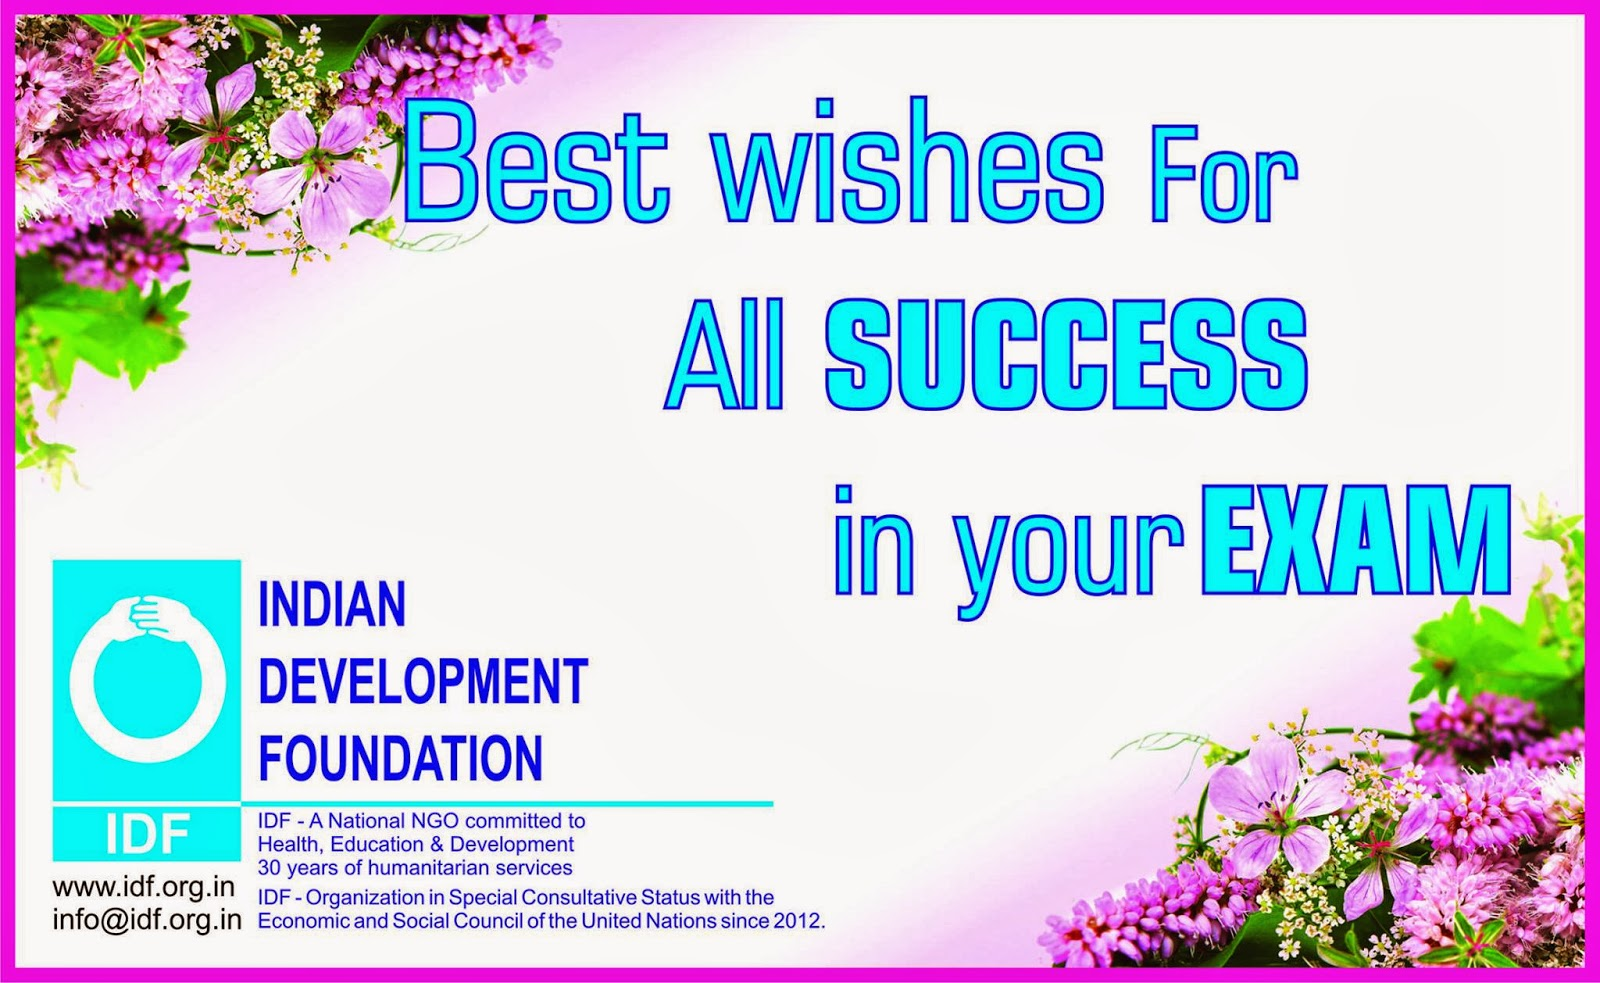 Perfect Best Wishes For All Success In Exams.  Exam Best Wishes Cards